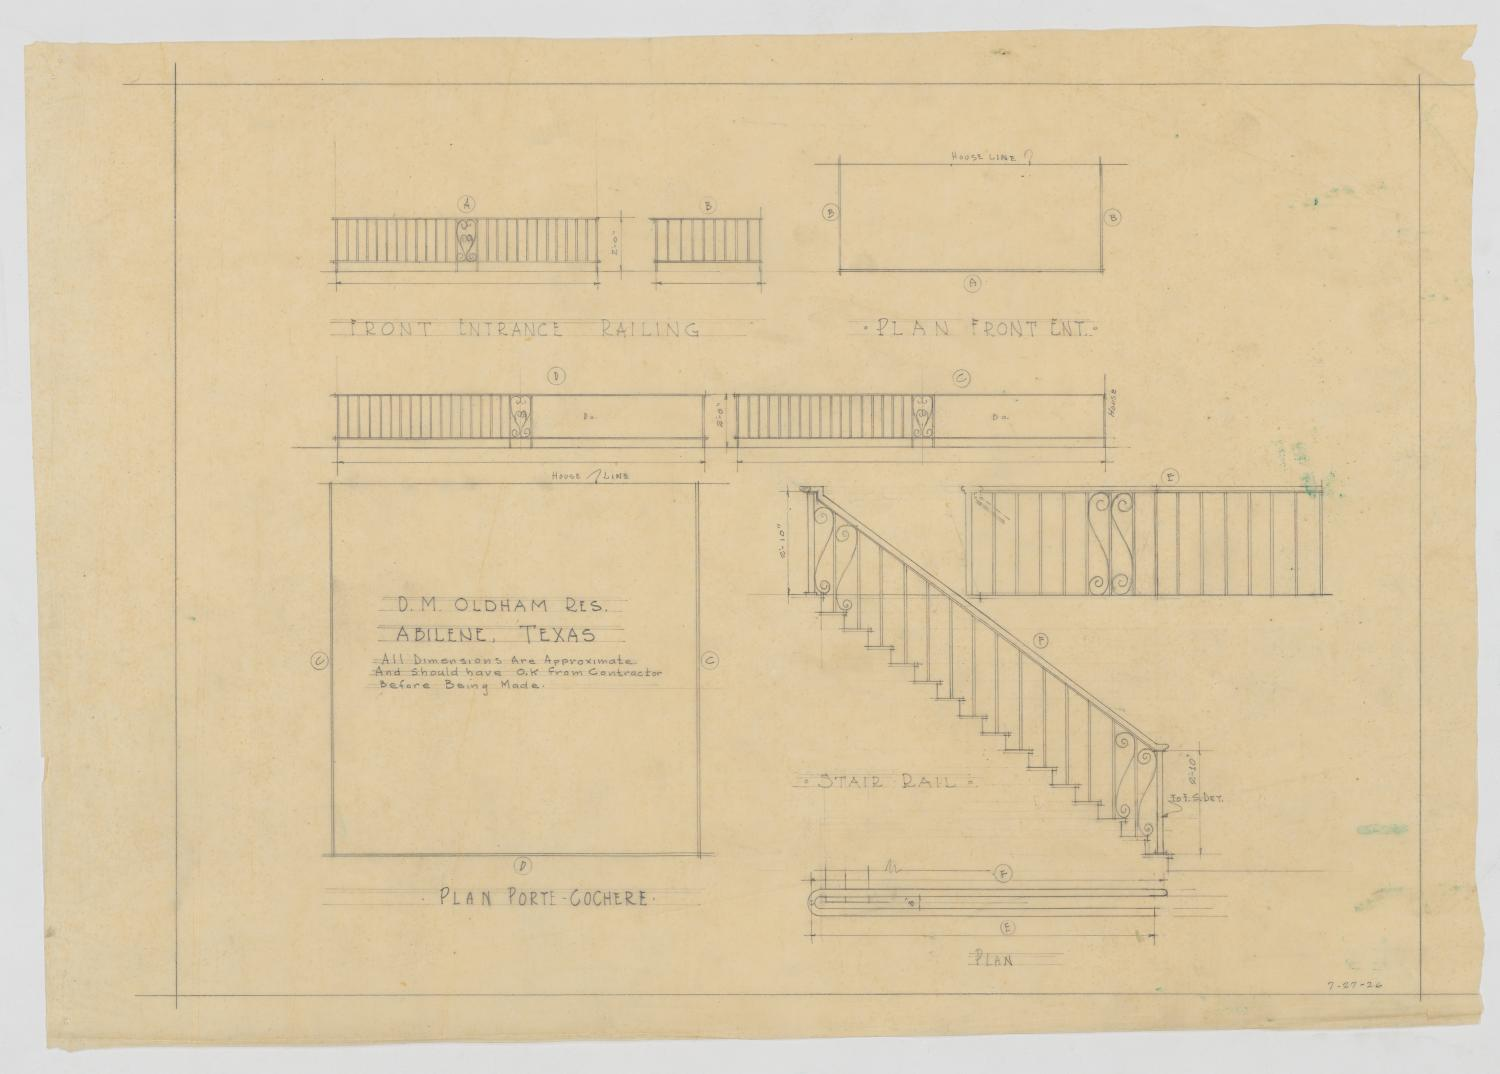 Oldham Residence, Abilene, Texas: Plans and Drawings                                                                                                      [Sequence #]: 1 of 2